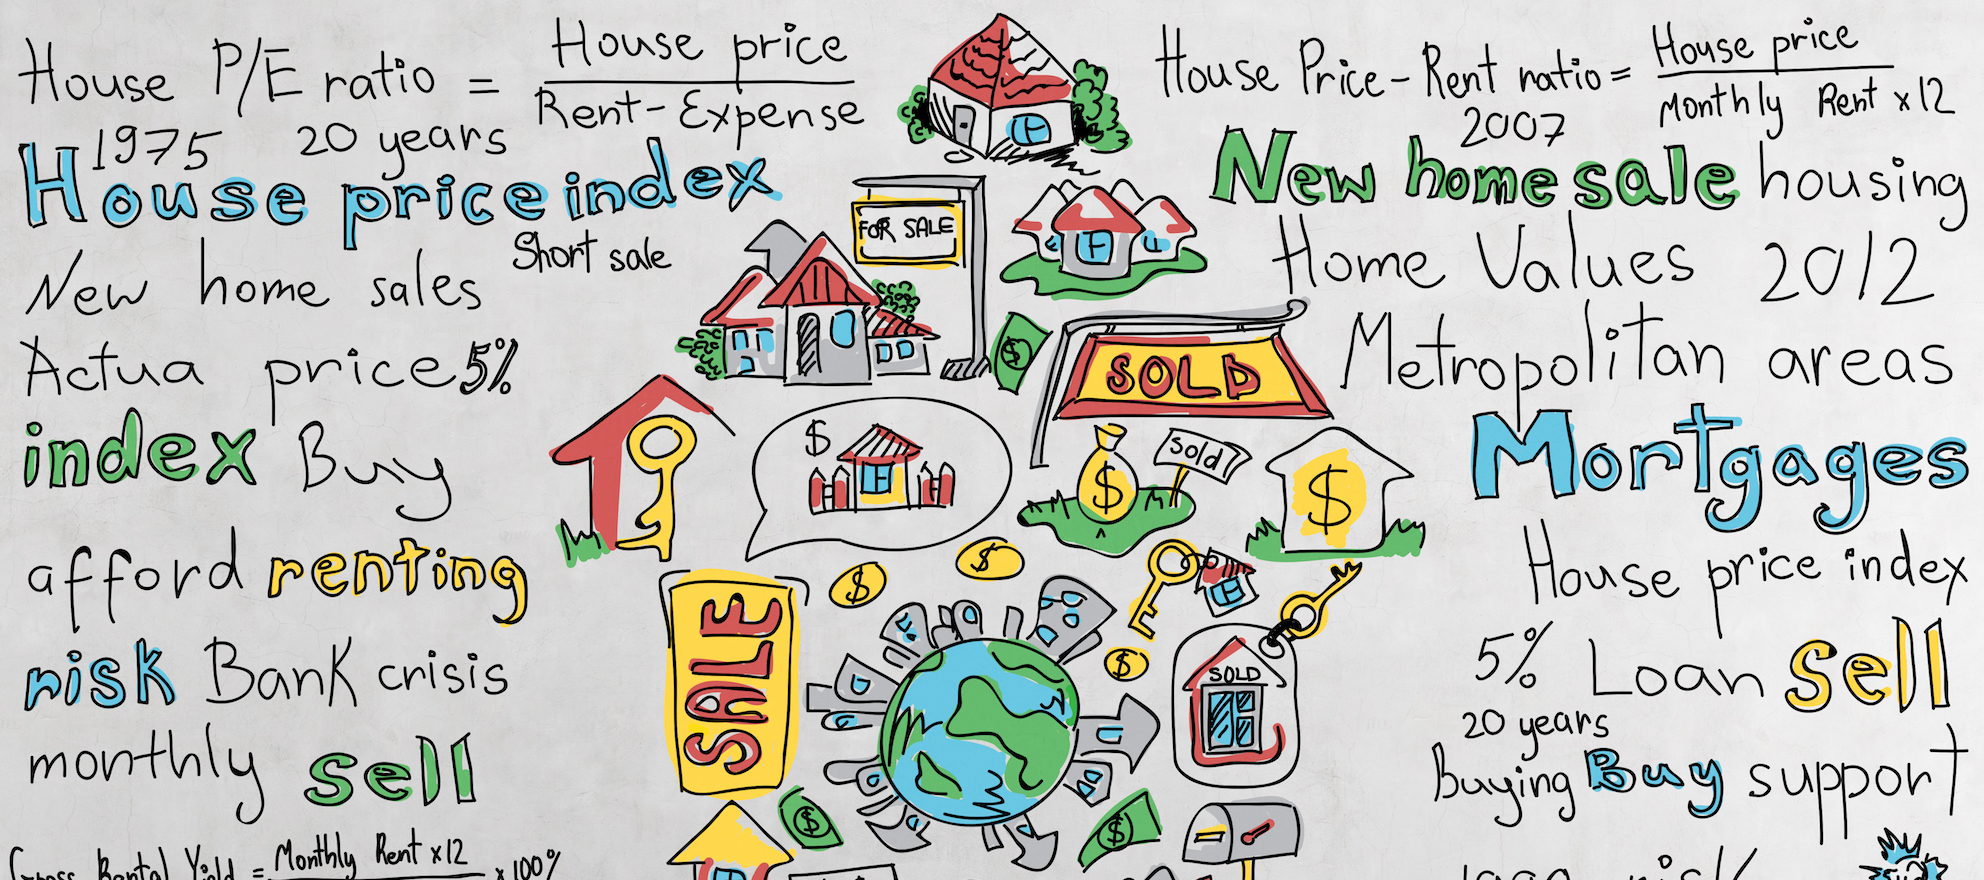 Is Hosting A Free Real Estate Seminar An Effective Use Of Time